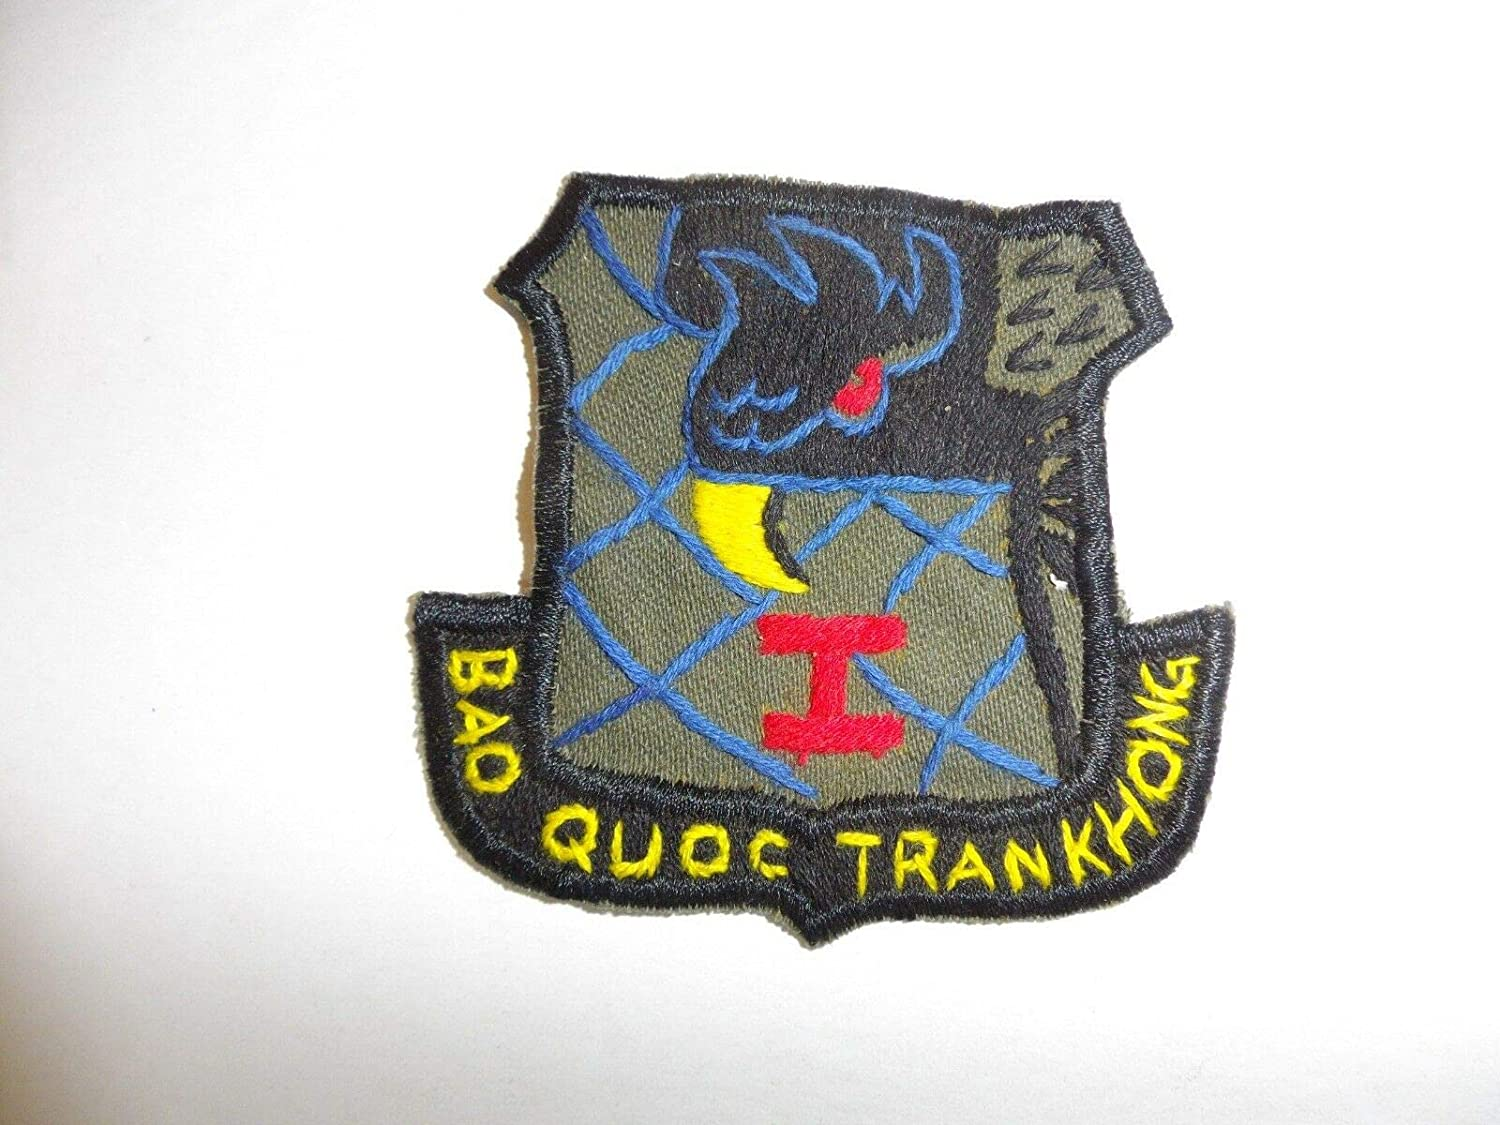 Vintage Reproduction b9913 RVN Cheap mail order sales Trust Vietnam Air Patch 1 D I Force